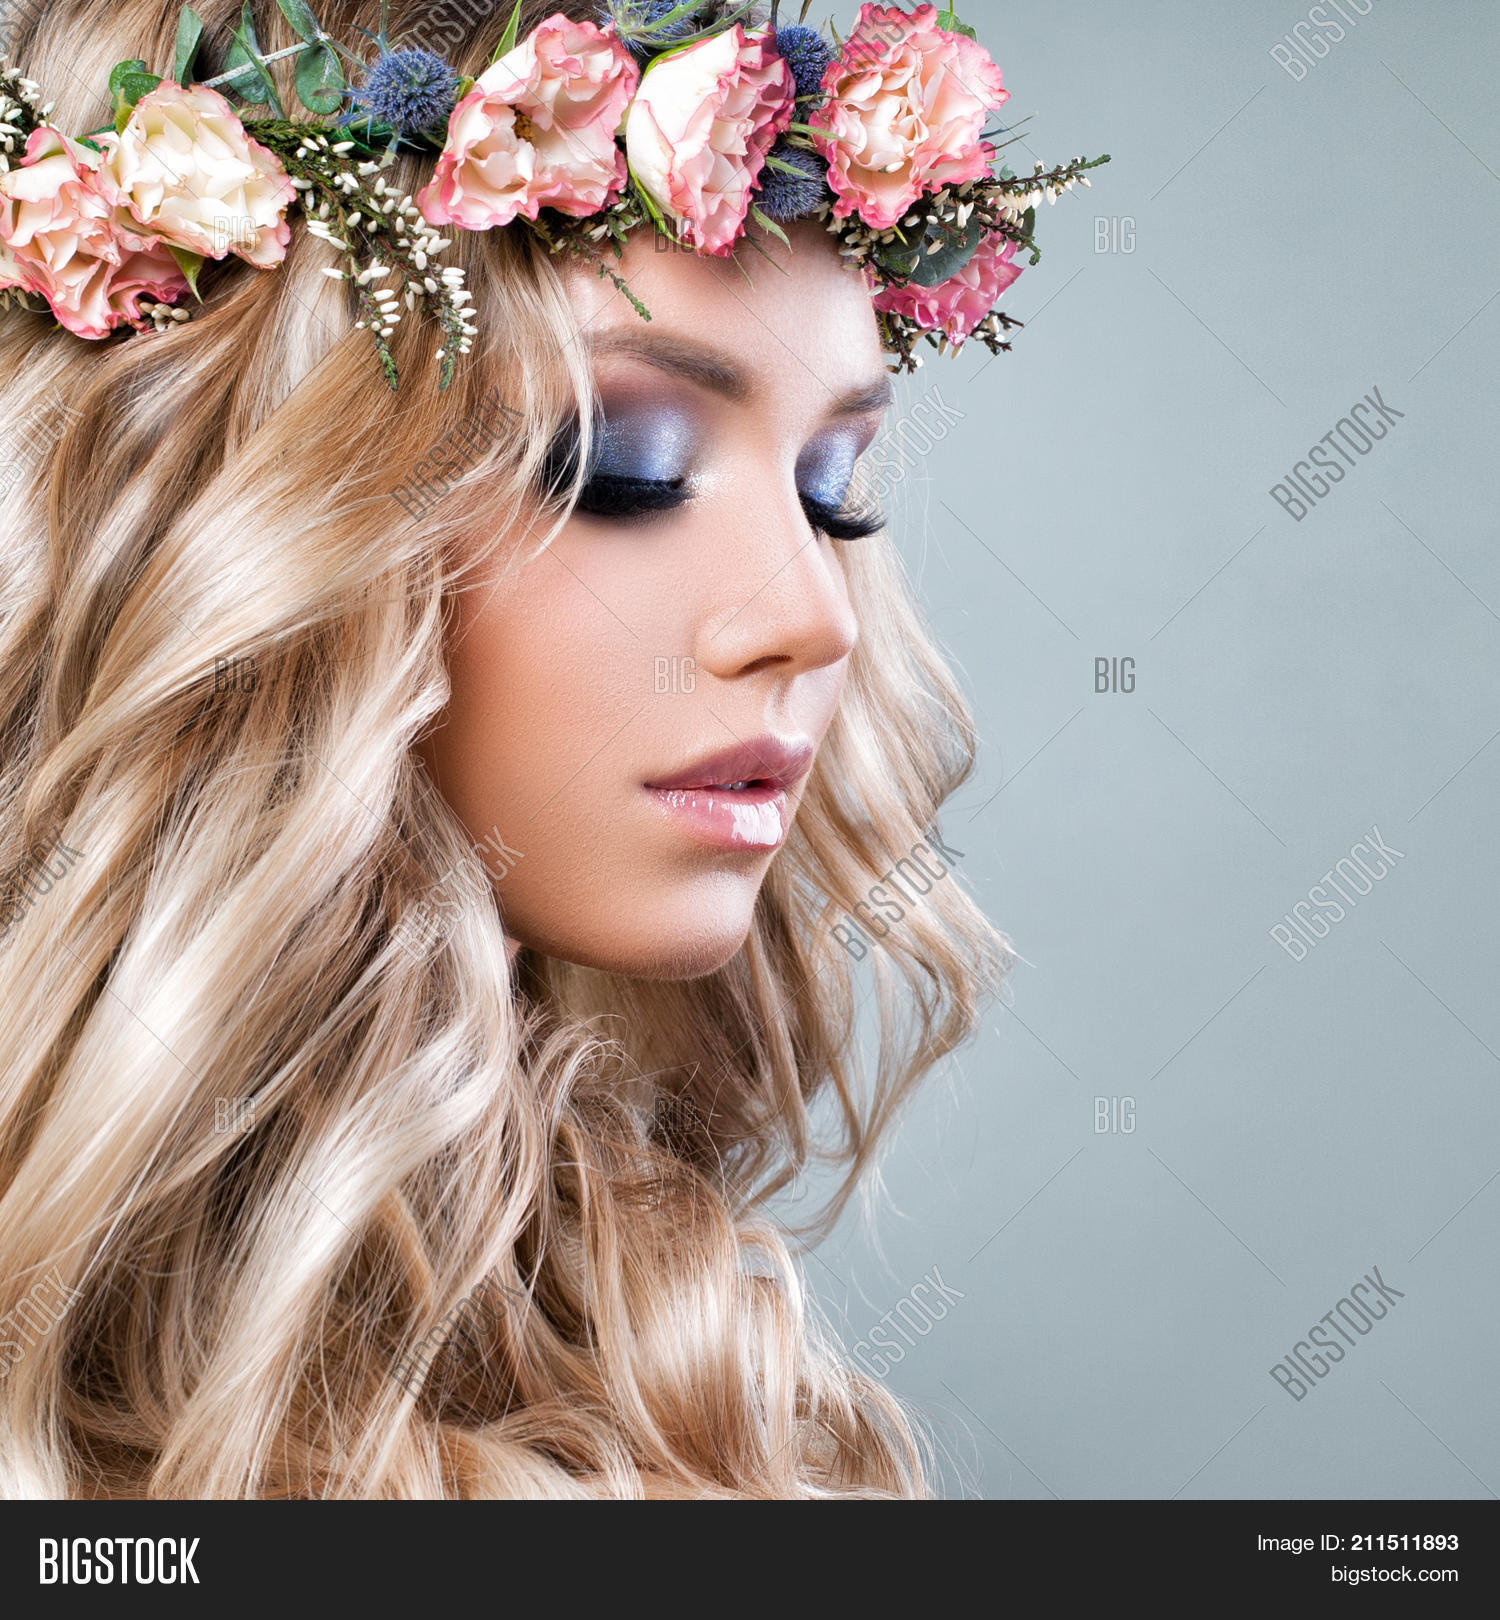 Beautiful woman summer image photo free trial bigstock beautiful woman with summer pink flowers blonde beauty long permed curly hair and fashion izmirmasajfo